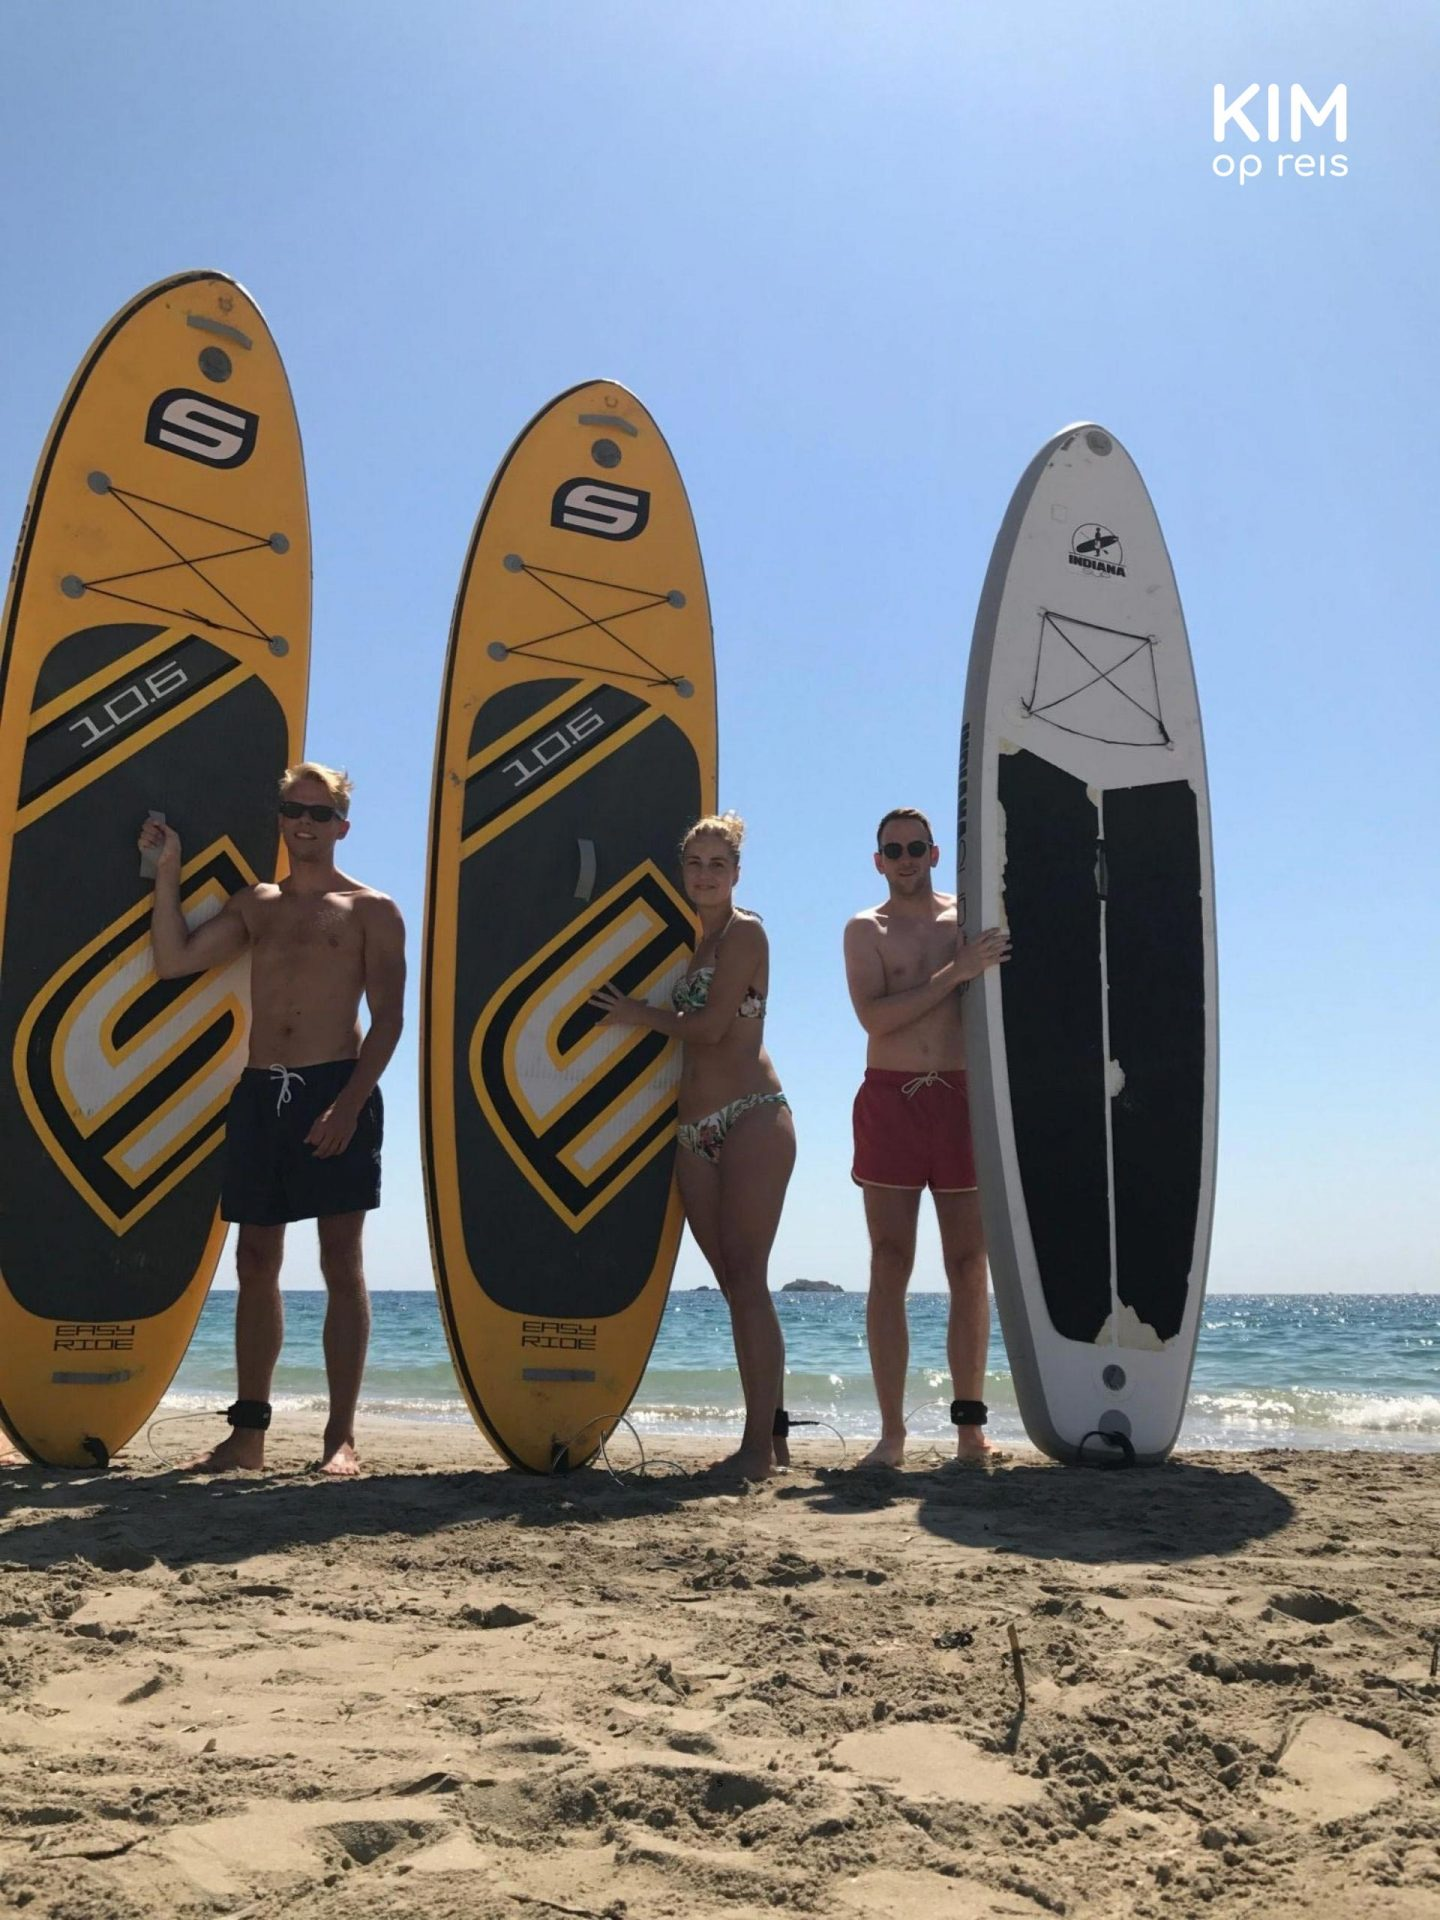 Posing with the SUP boards - 3 people are standing on the beach next to their SUP board